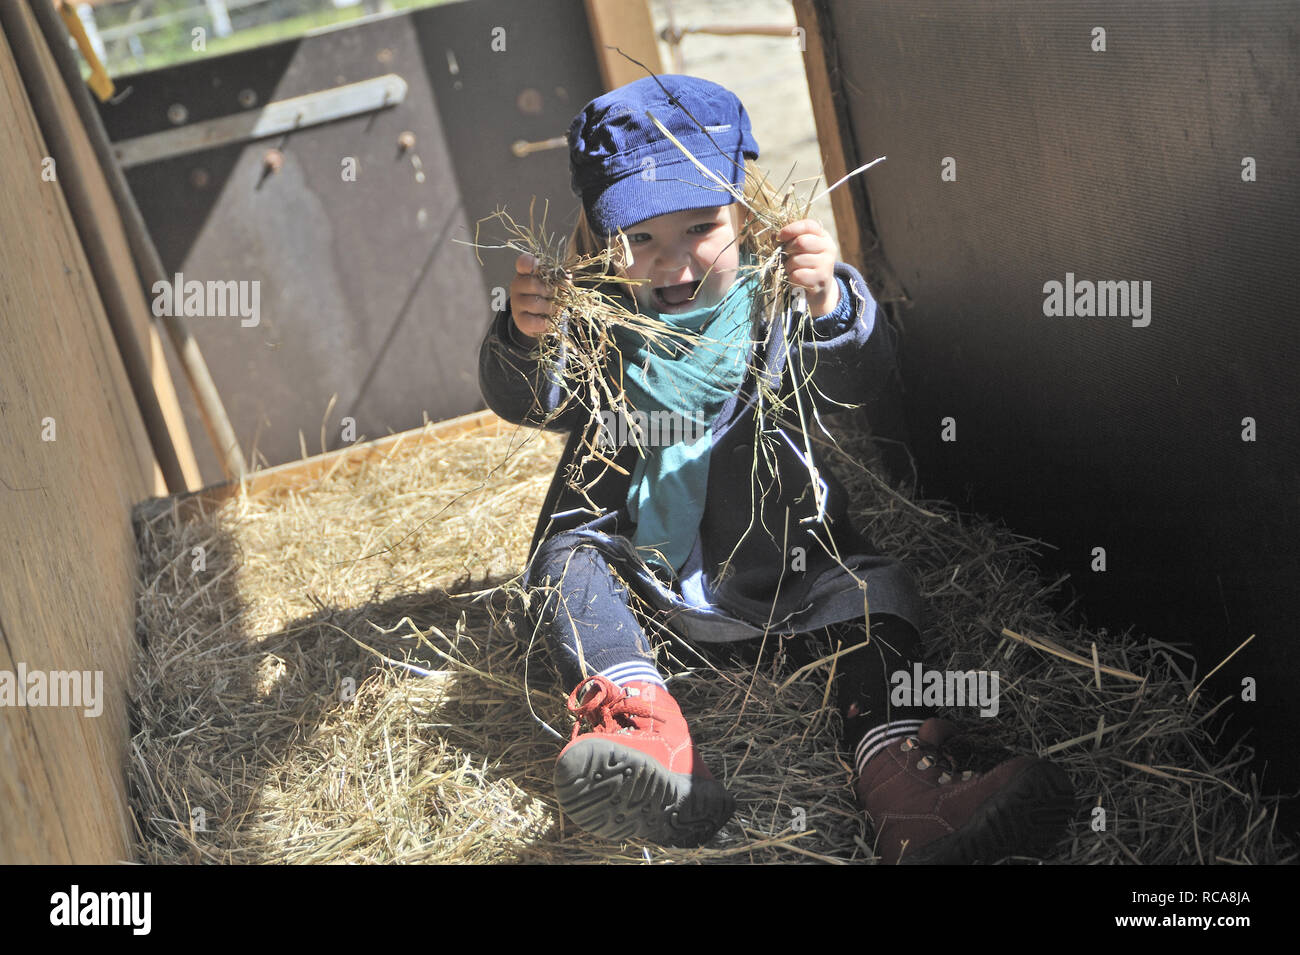 Kind spielt im Stroh | Child plays in straw - Stock Image